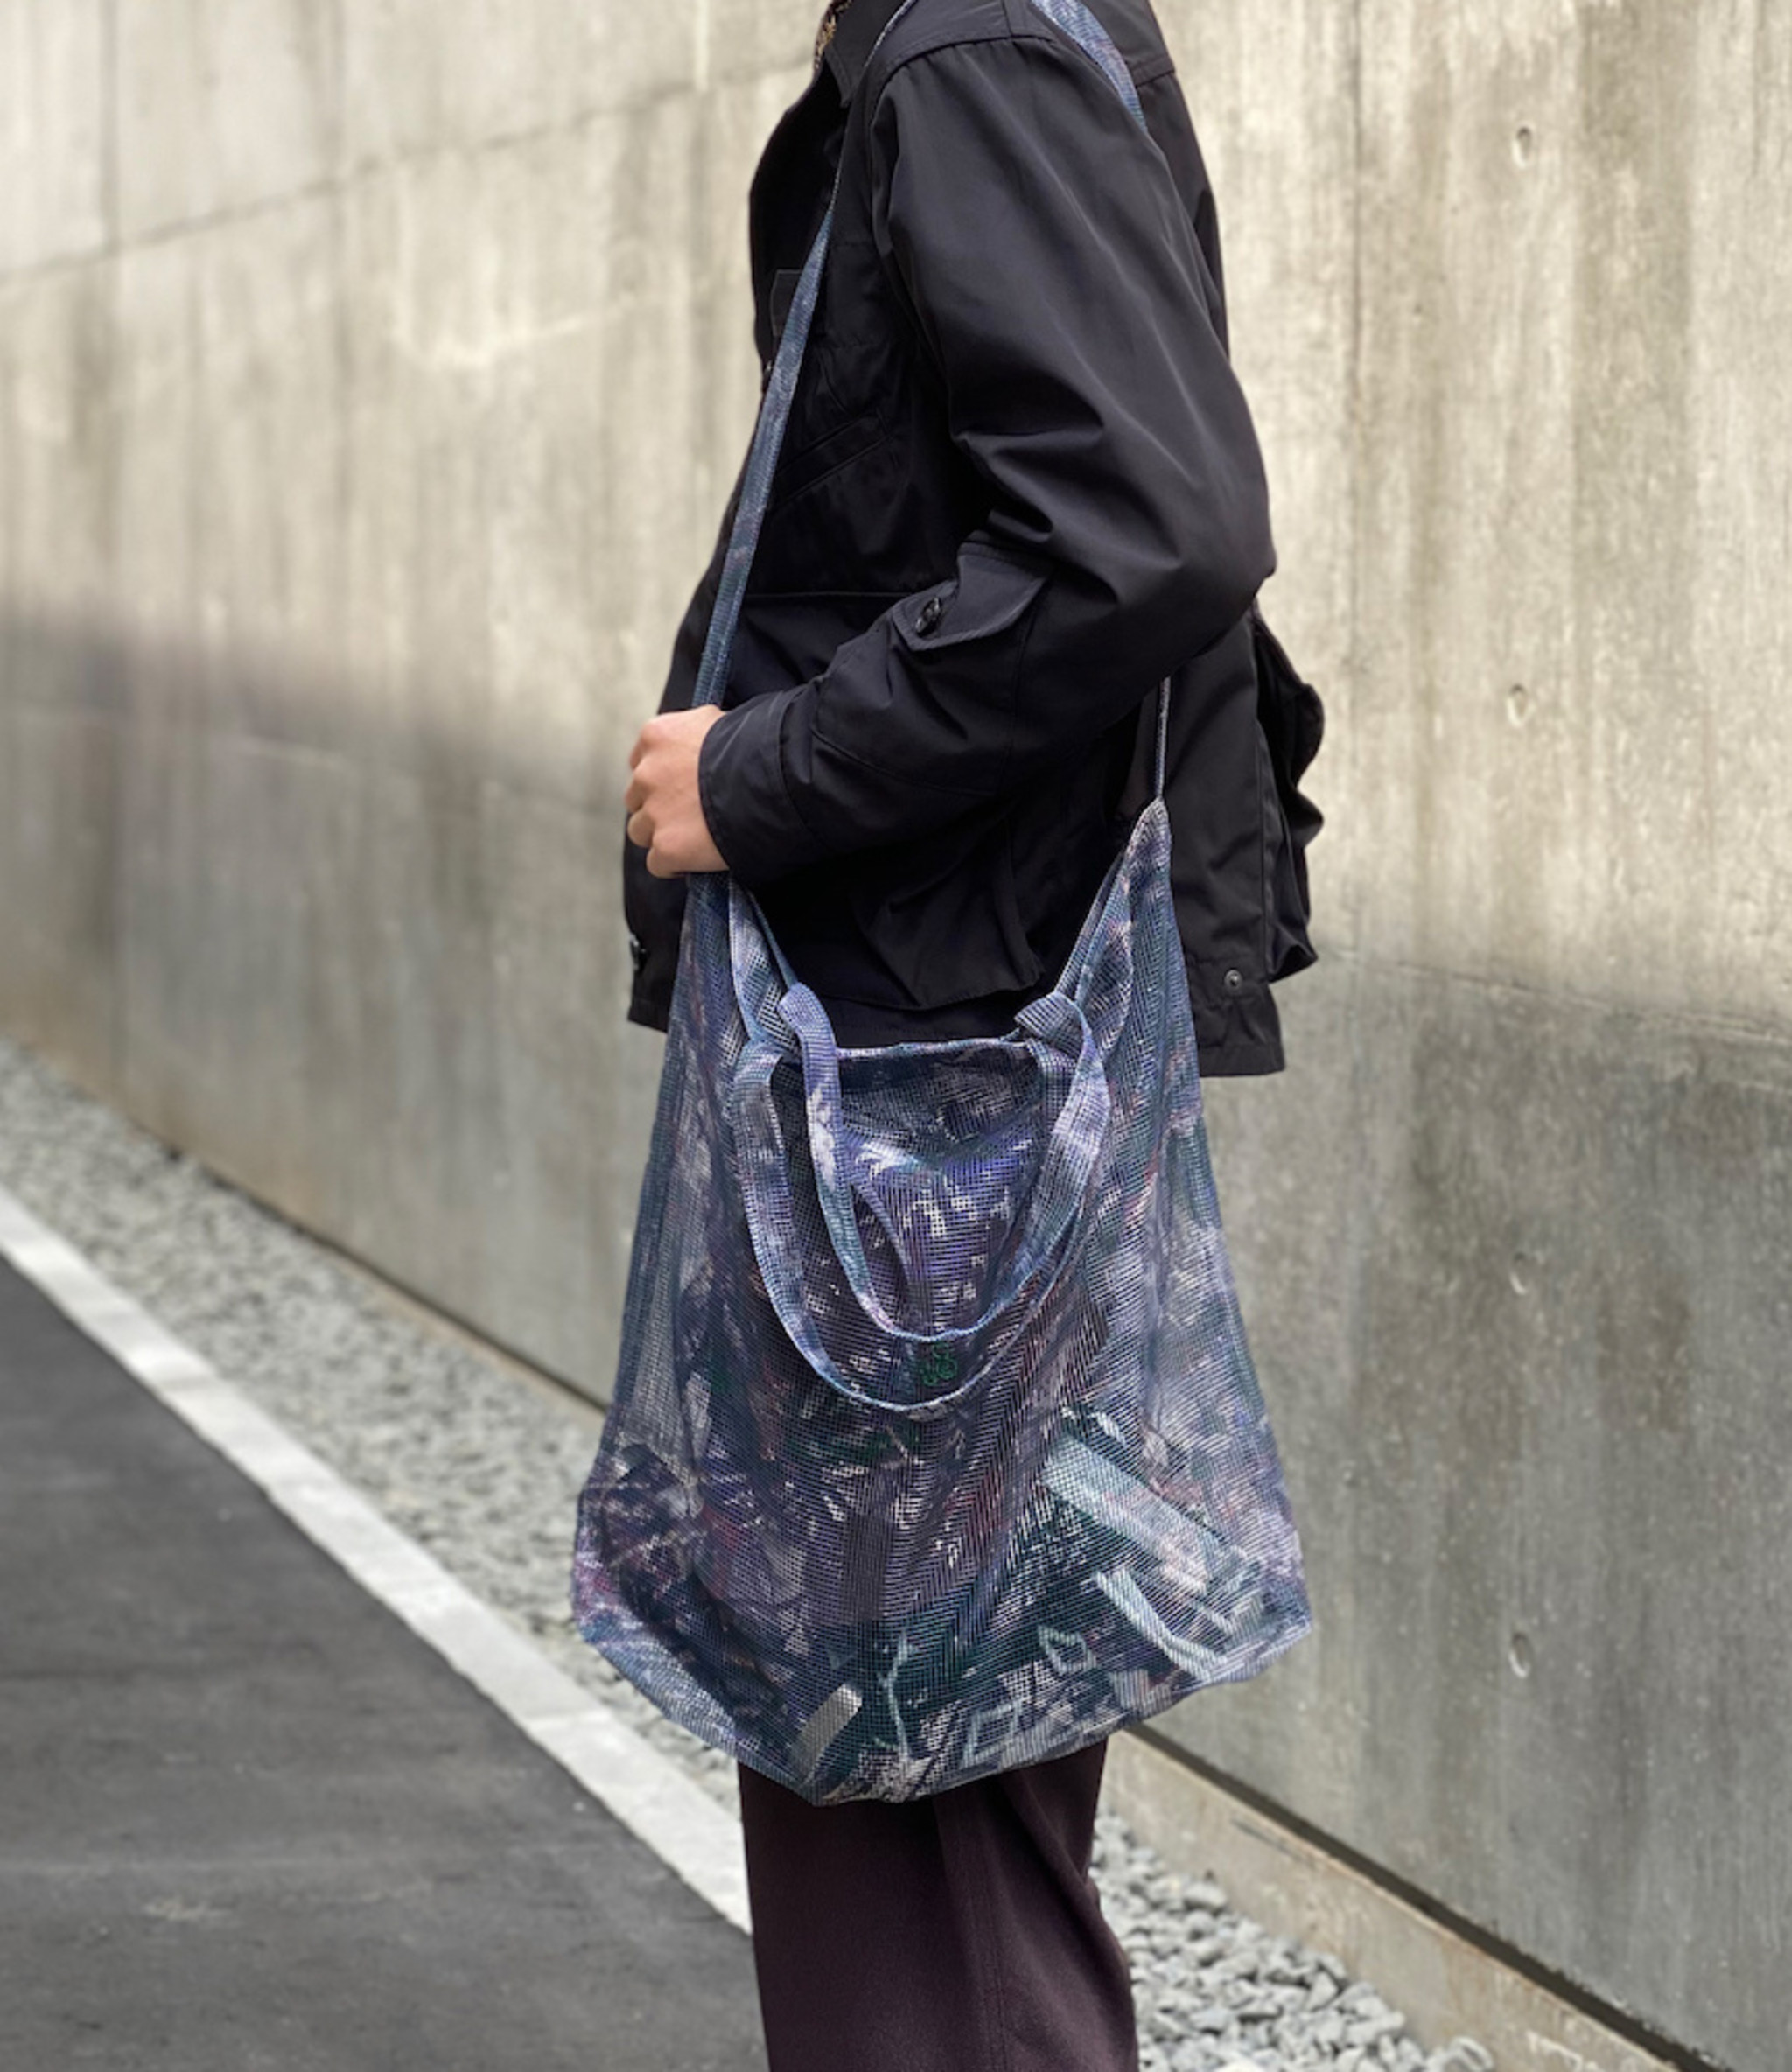 South2 West8 Grocery Bag - Poly Heavyweight Mesh / Print - S2W8 Camo